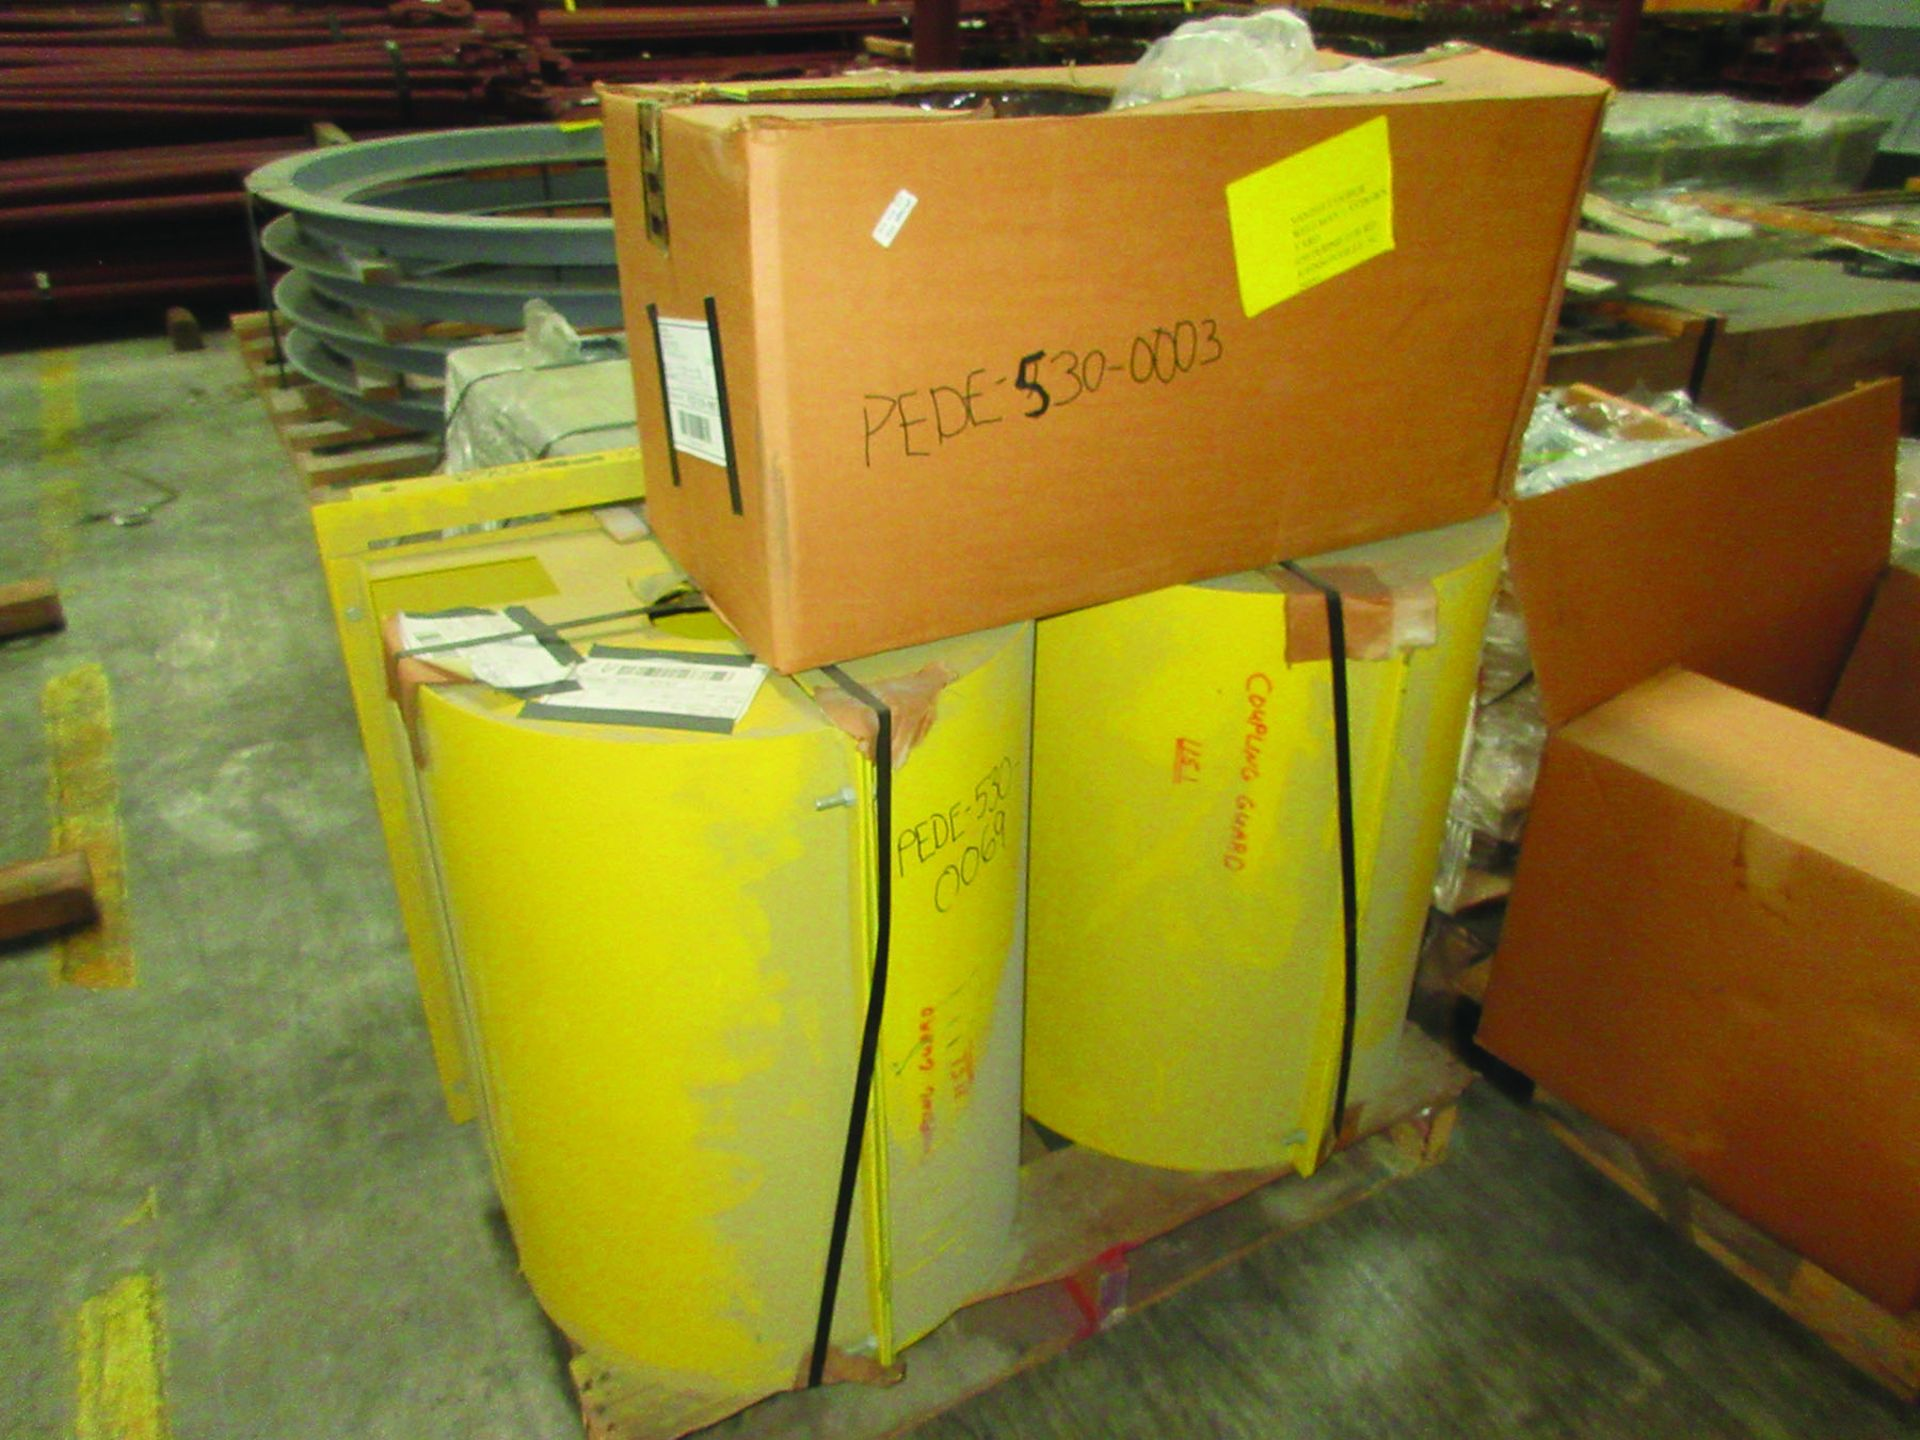 LOT OF ASSORTED PARTS: BARSETS, SHAFT COUPLINGS, COUPLING GUARDS, AND MORE, GRID A7 - Image 3 of 16